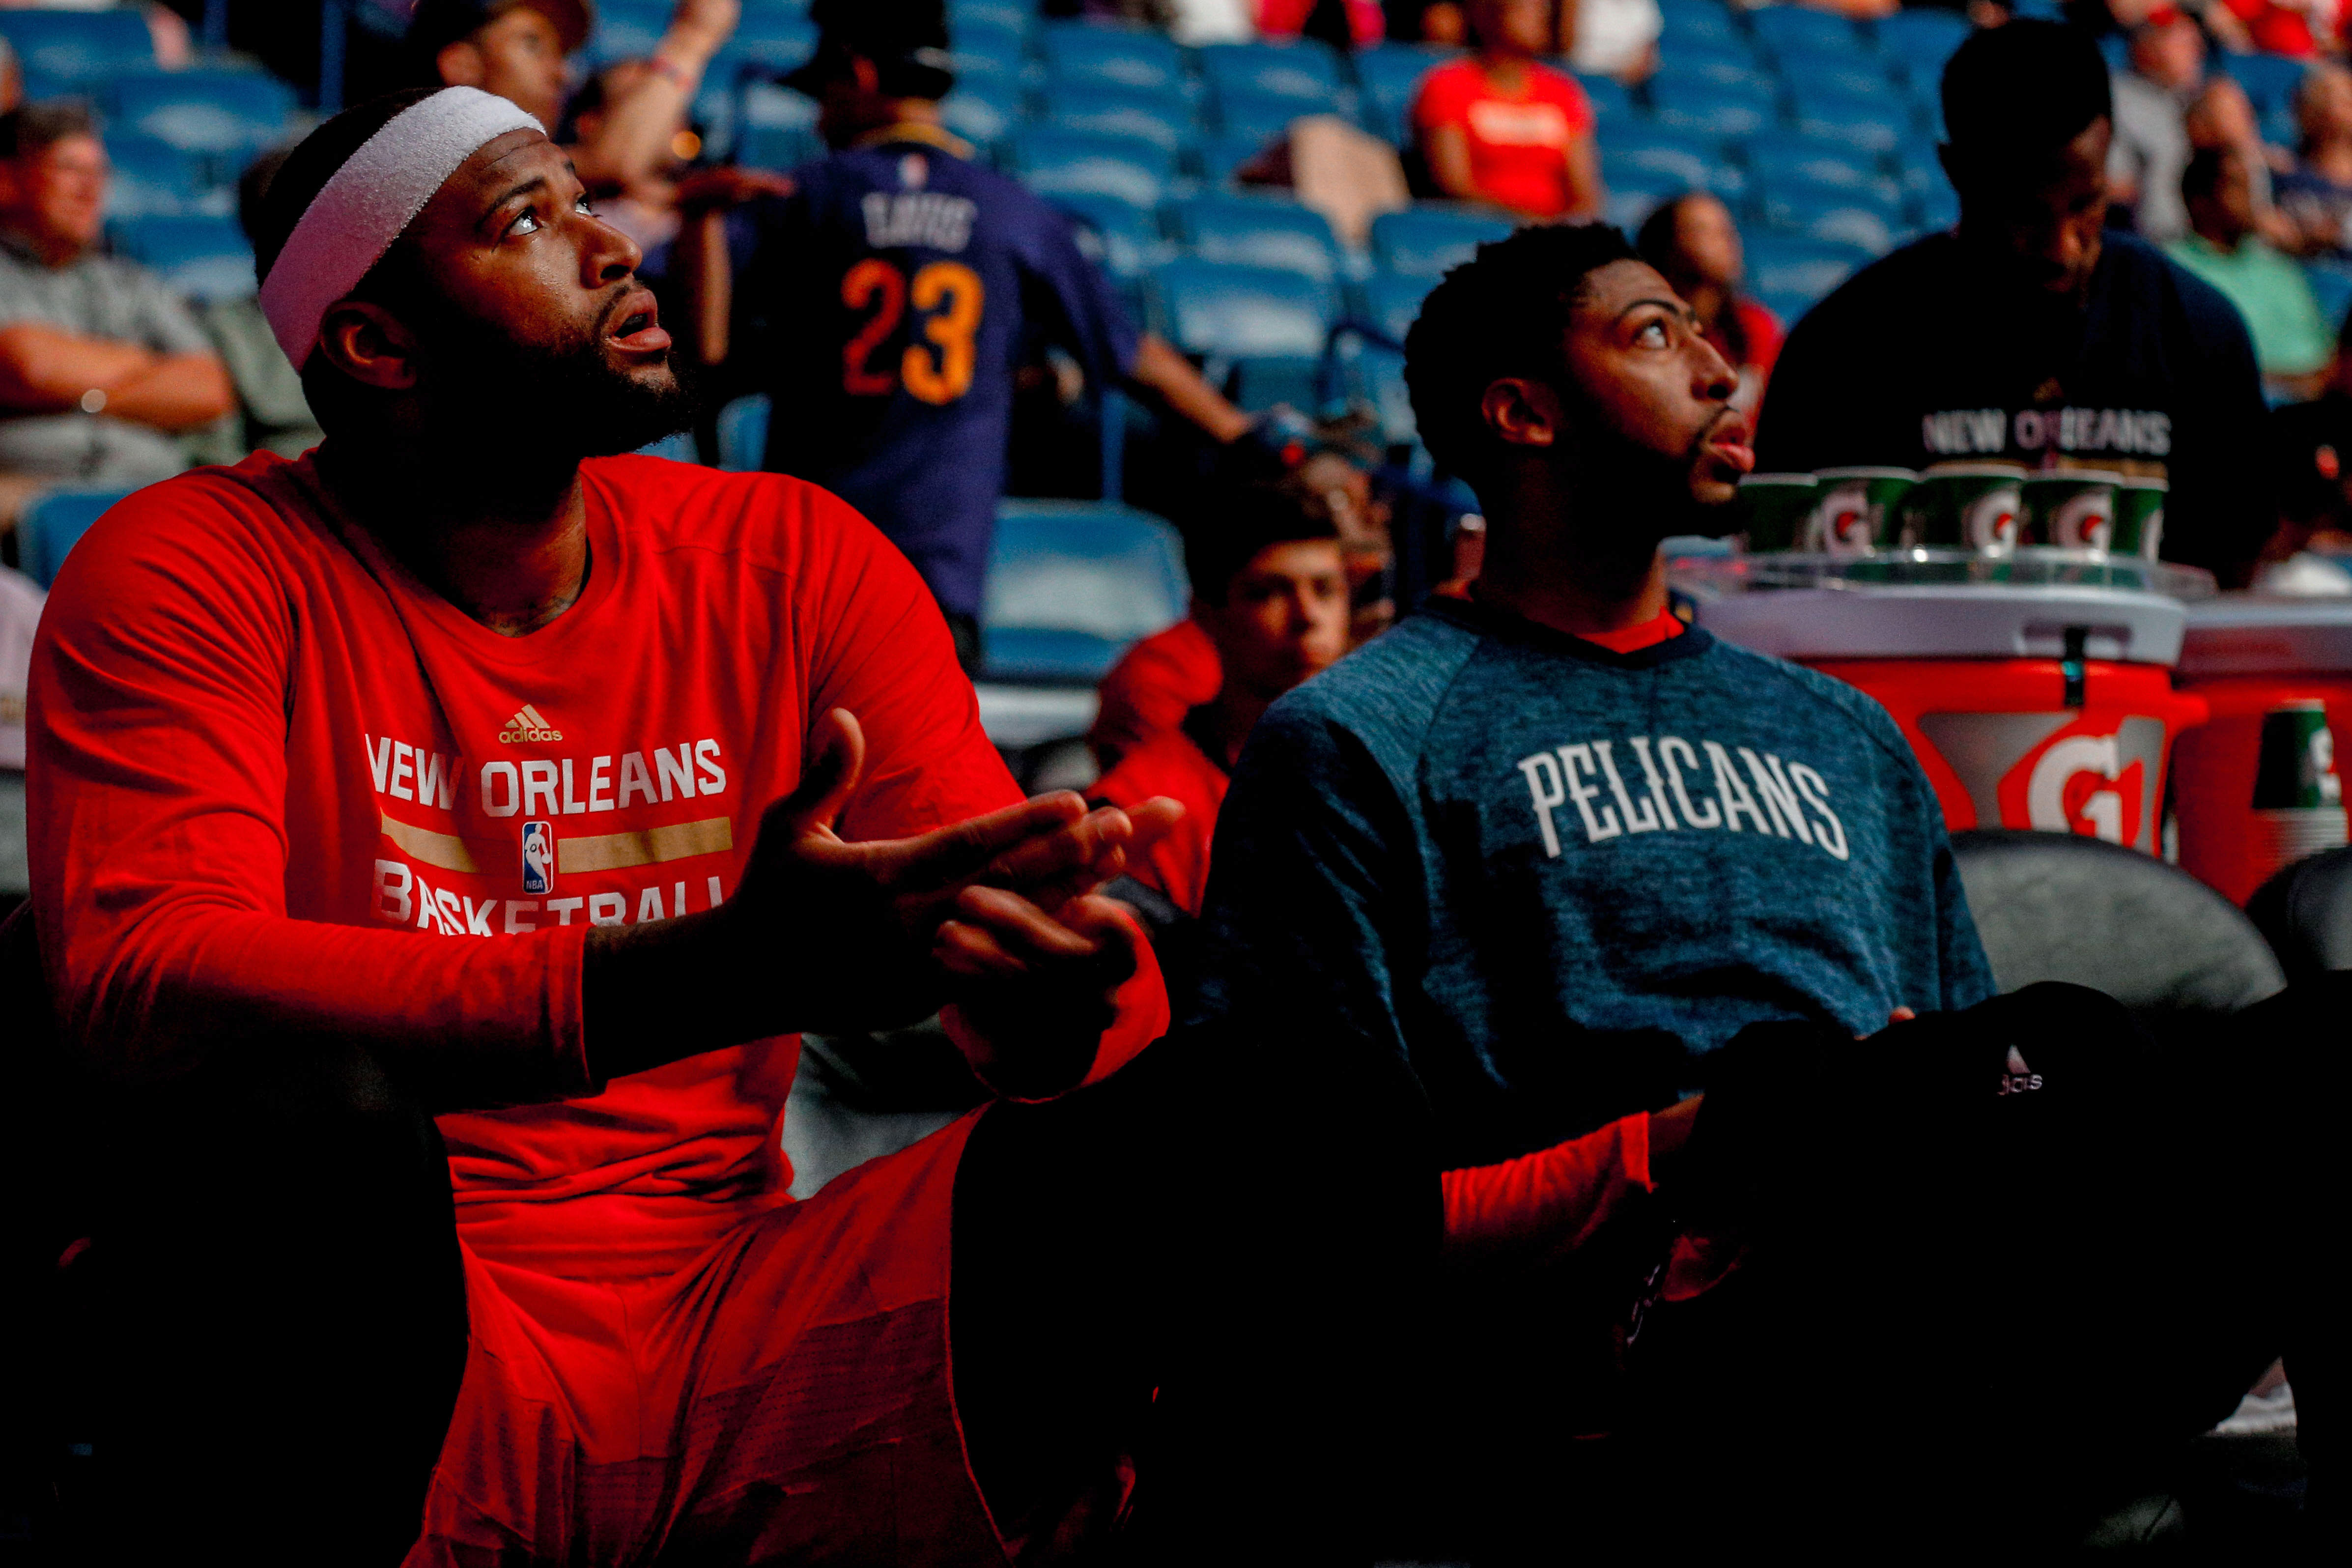 9993165-nba-denver-nuggets-at-new-orleans-pelicans